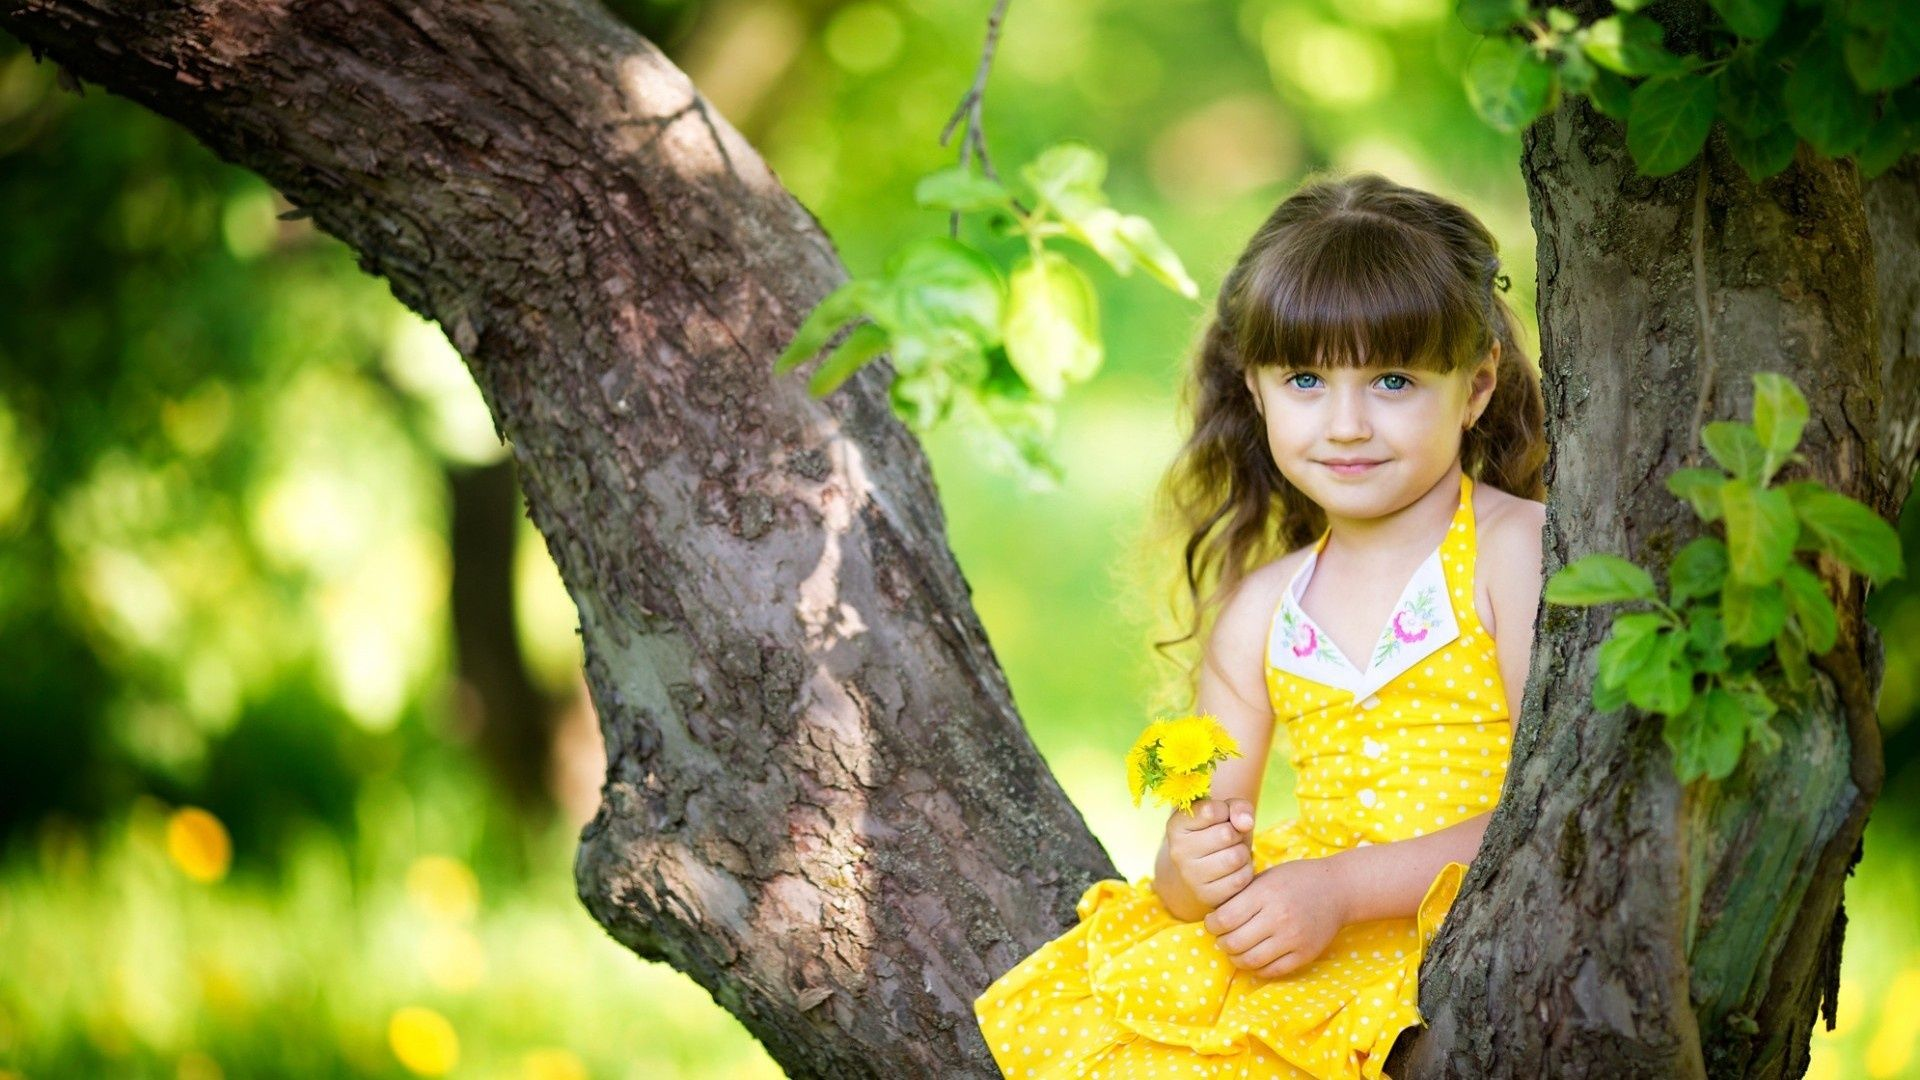 Amazing Pretty Cute Girl Hd Wallpaper For Wallpaper Windows 8 With